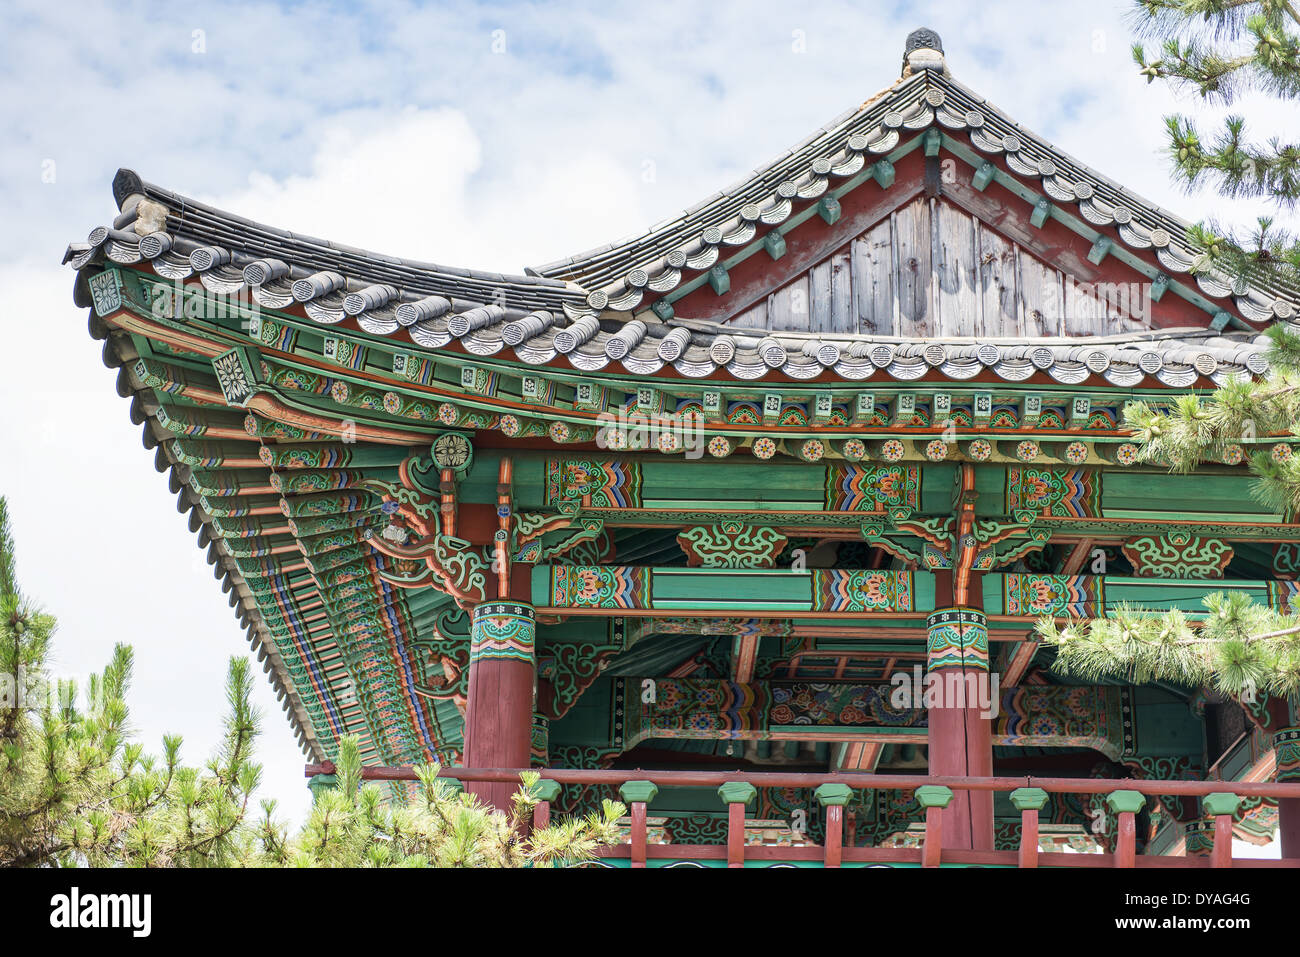 Jinnamgwan Hall an old naval base with colorful wooden structures in Yeosu, South Korea - Stock Image